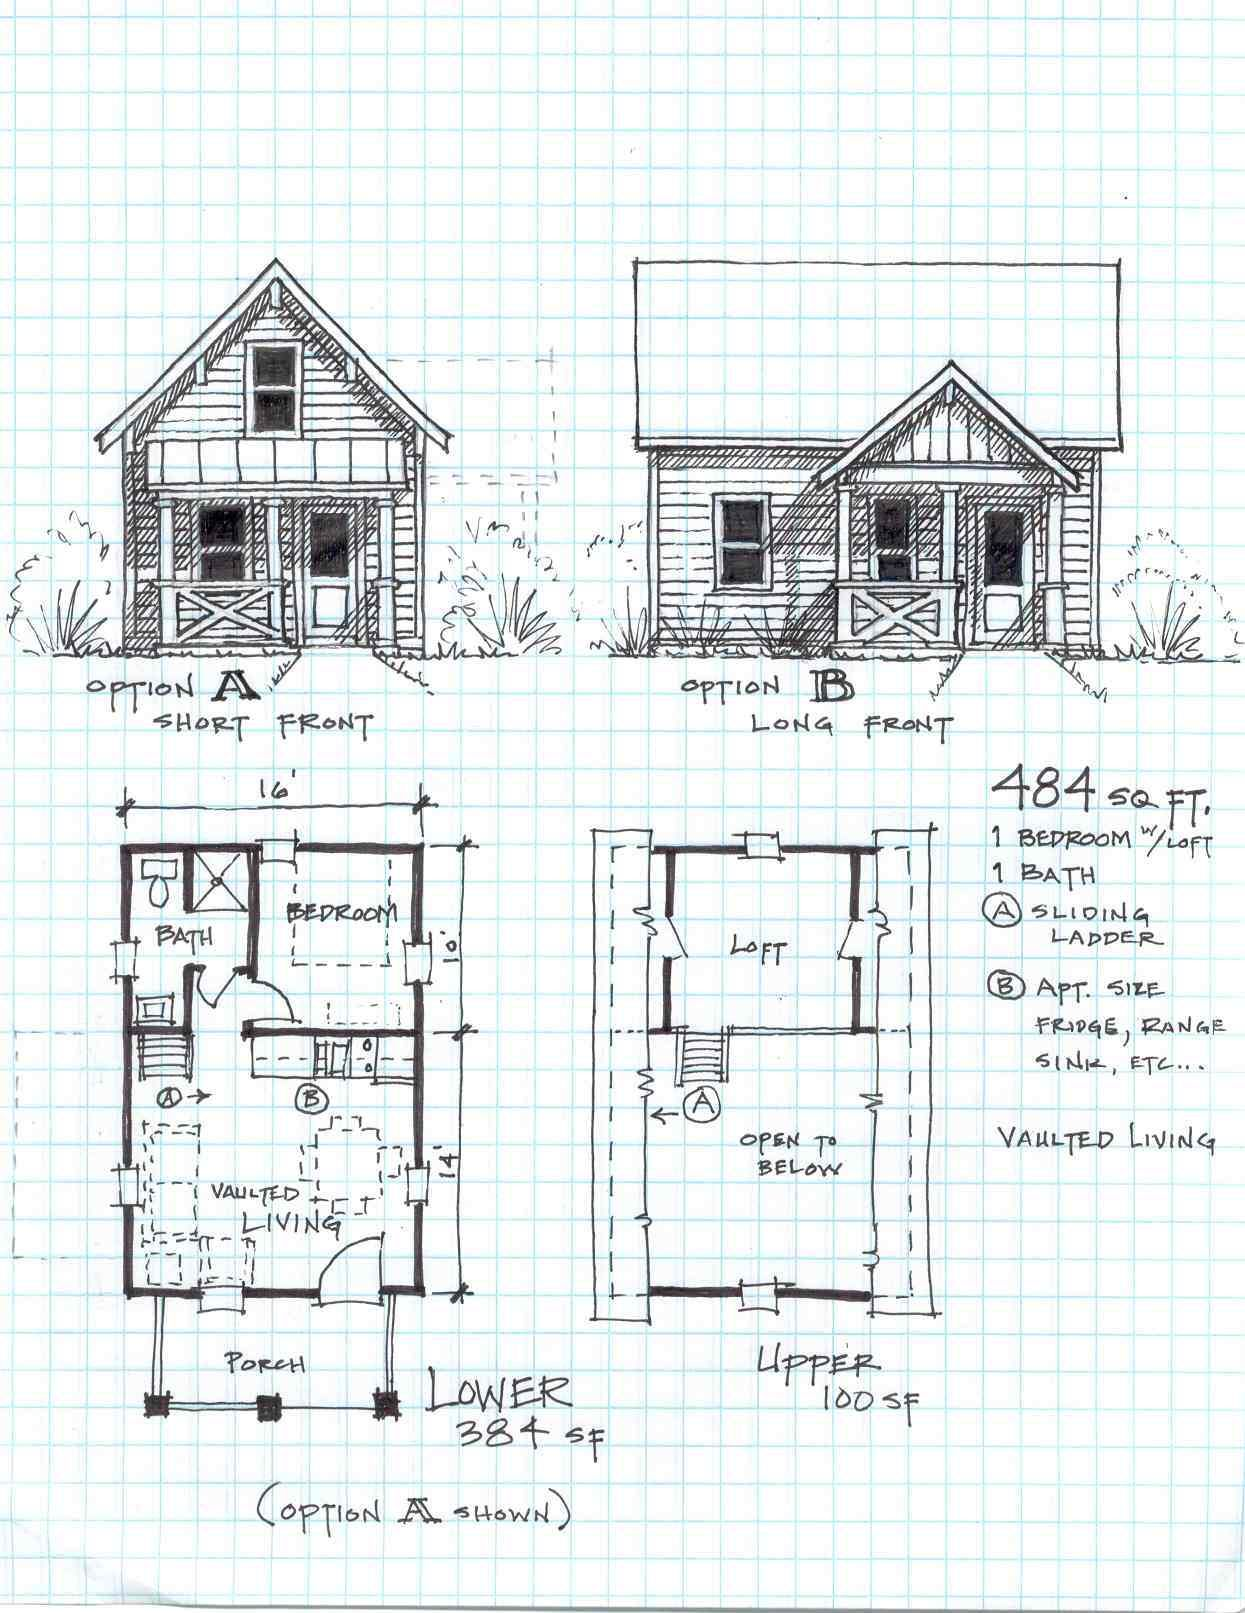 30 Small Cabin Plans For The Homestead Prepper The Survivalist Blog Small Cabin Plans Cabin Floor Plans Loft Floor Plans